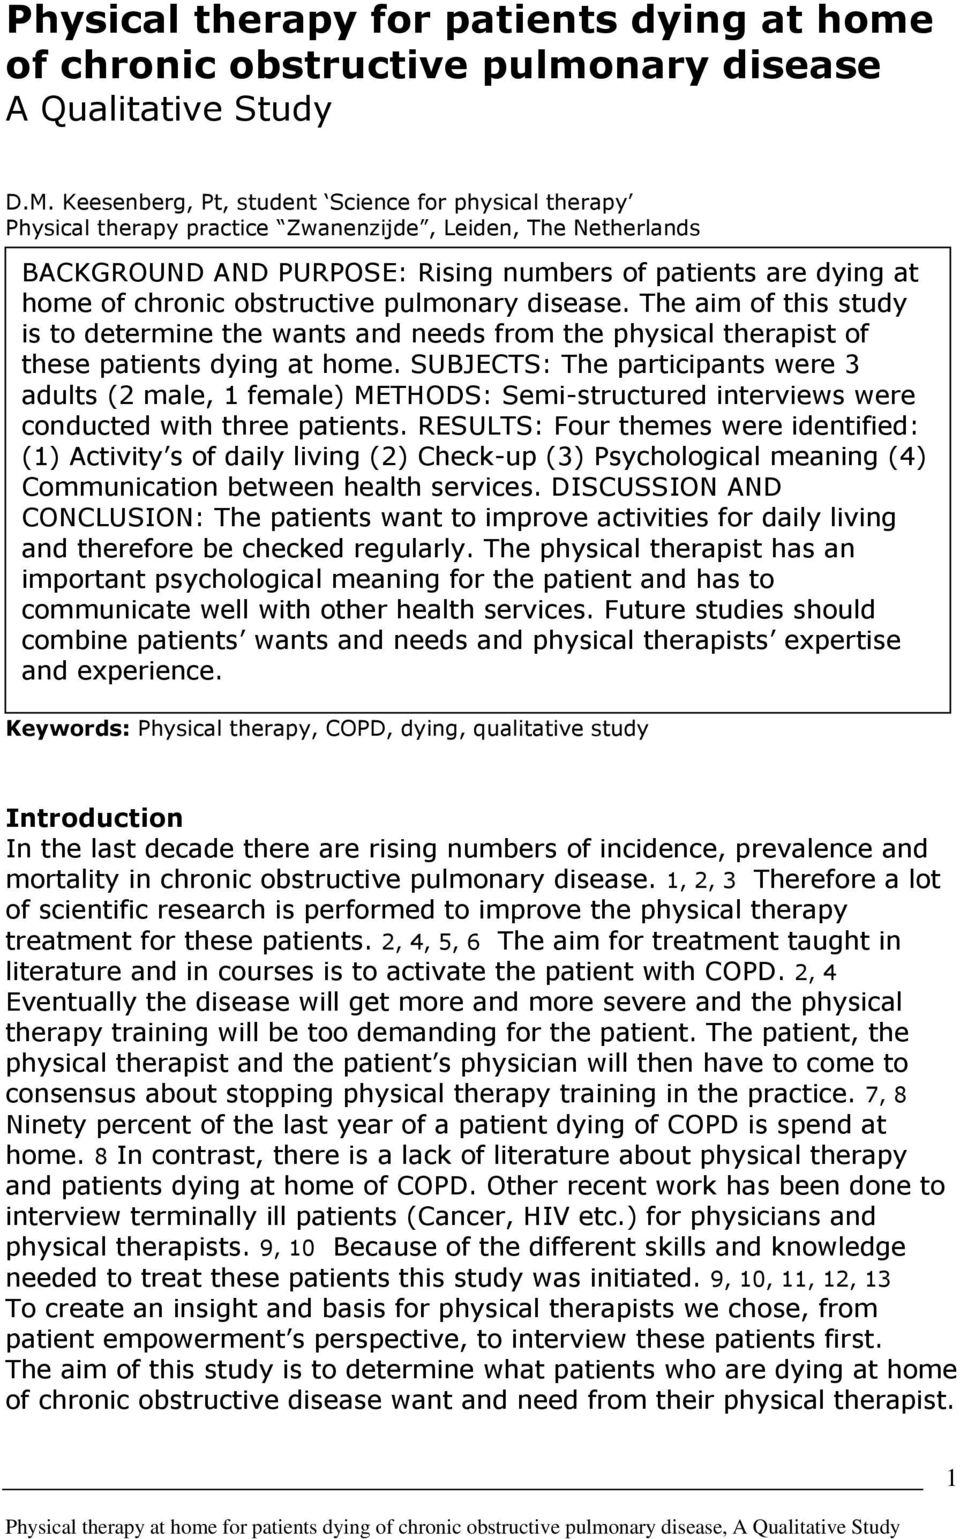 obstructive pulmonary disease. The aim of this study is to determine the wants and needs from the physical therapist of these patients dying at home.